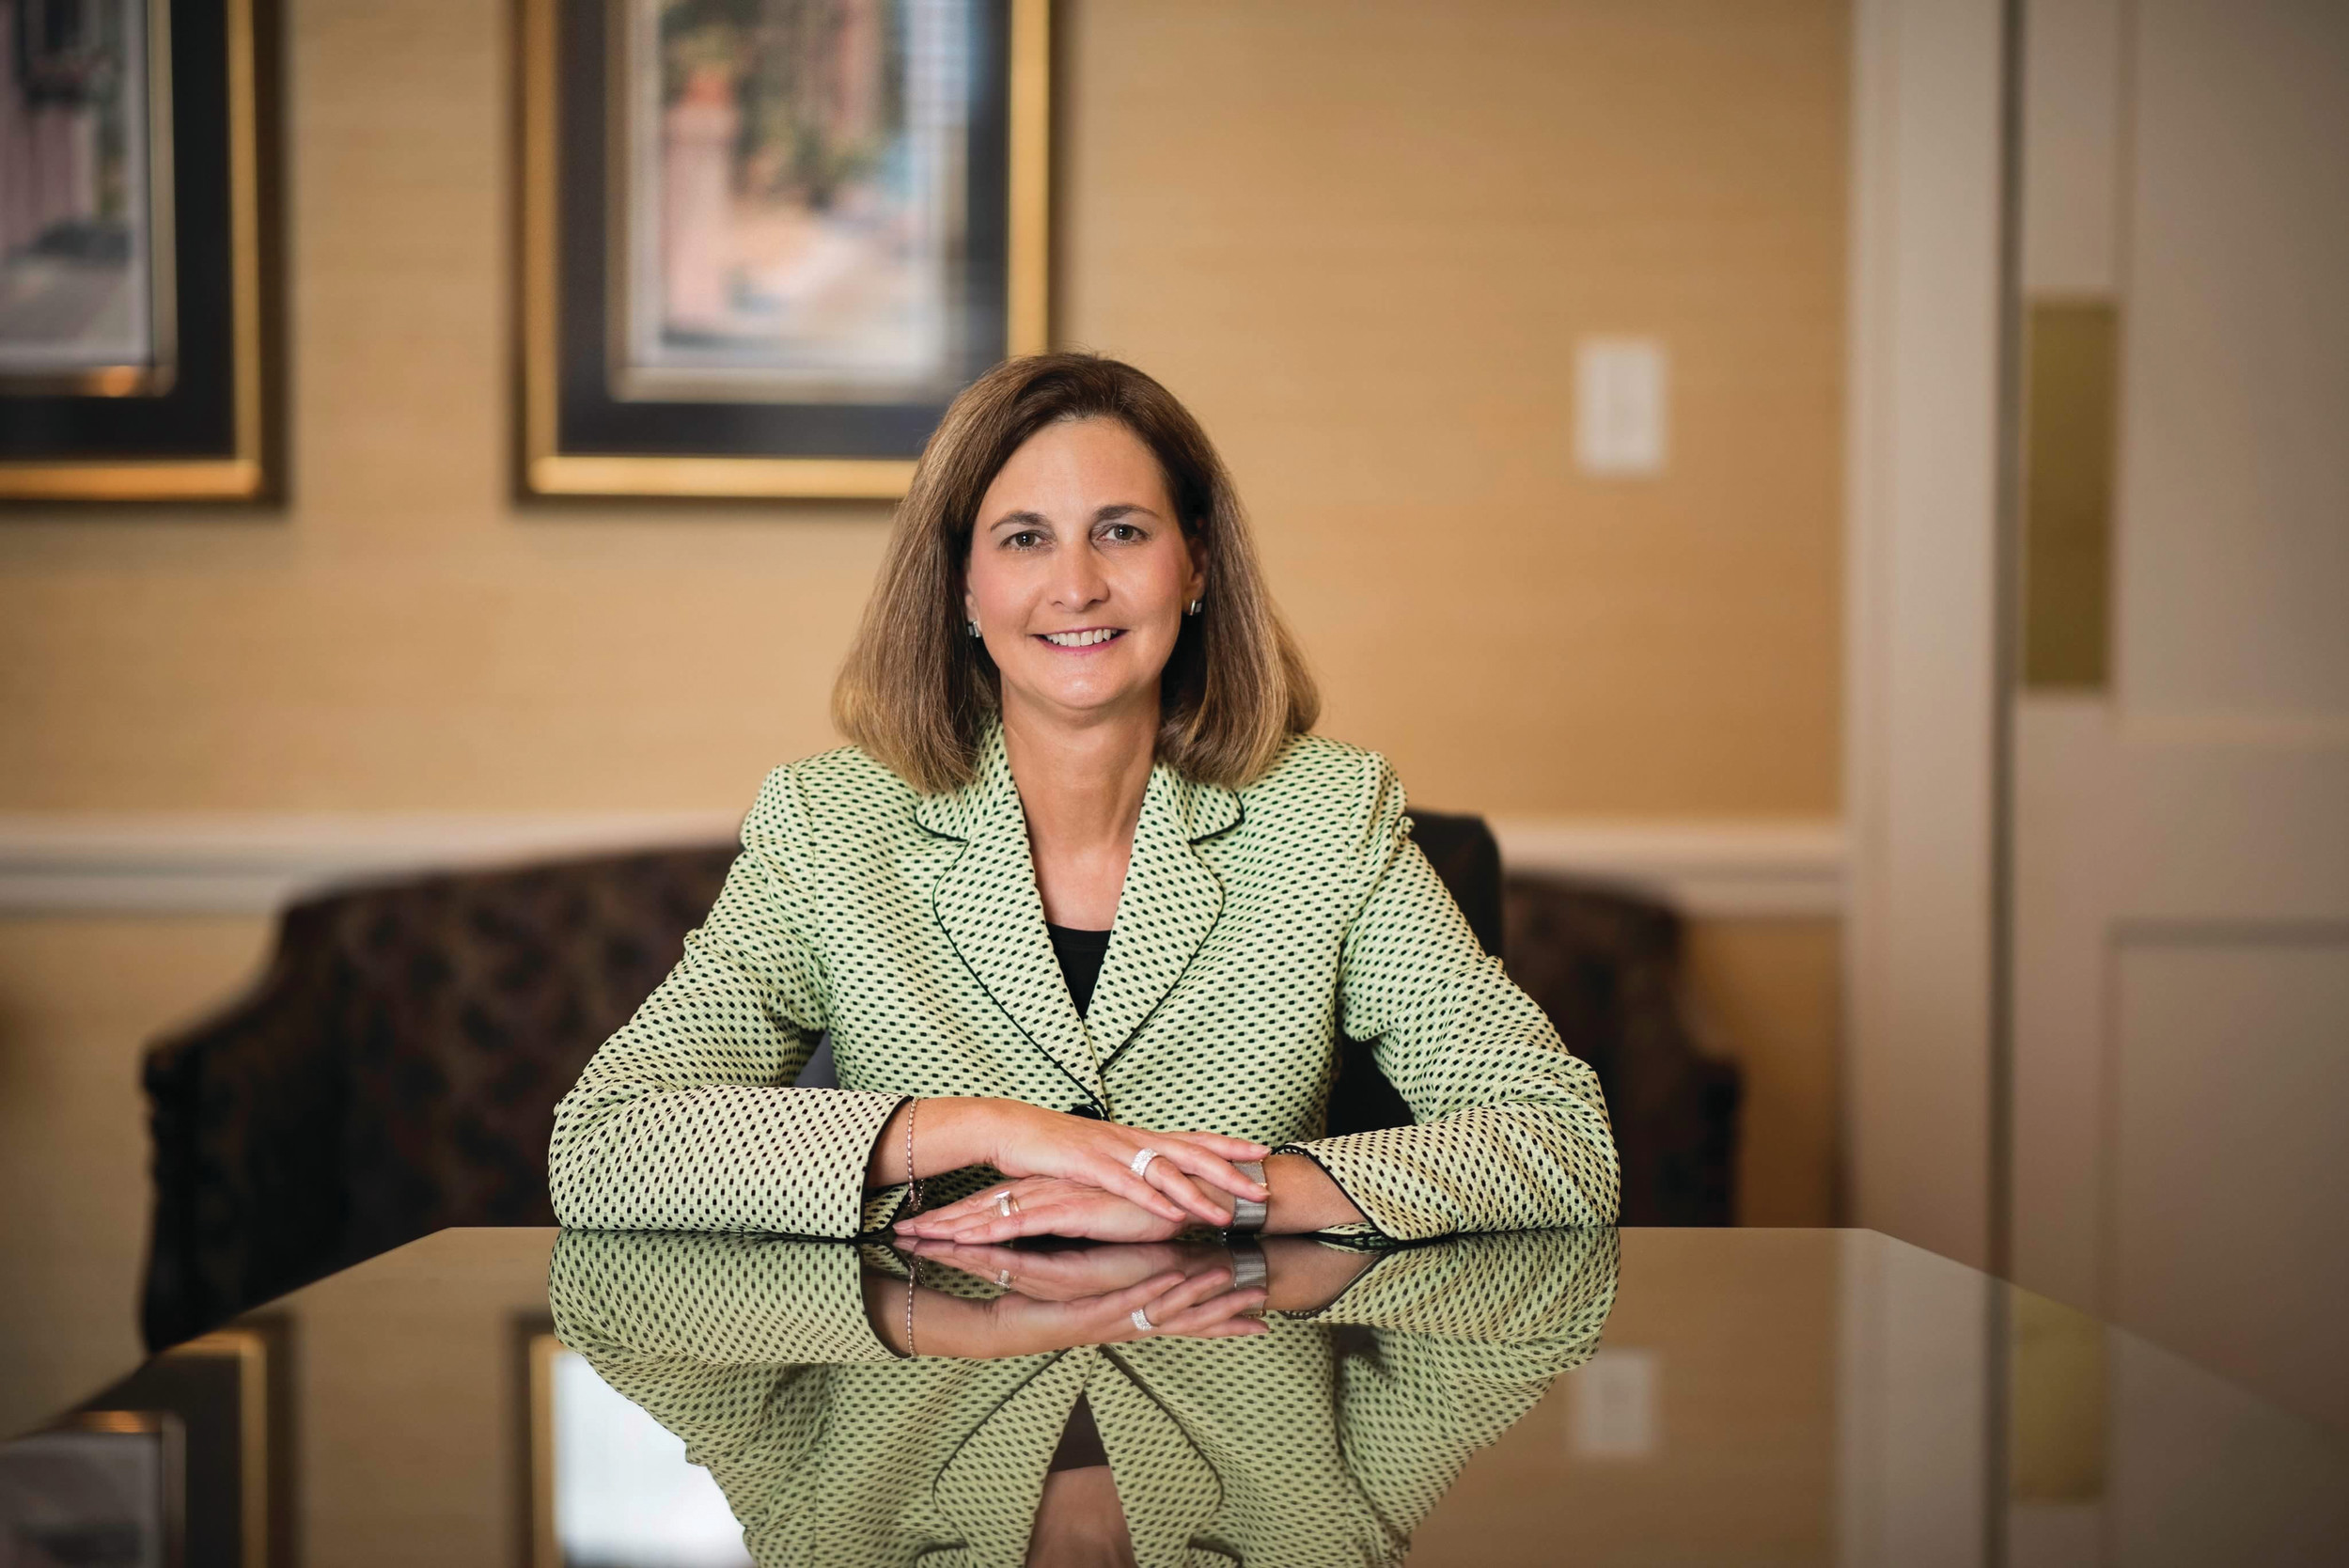 Vonda Mociun recently joined the Bank of Clarendon's board of directors.